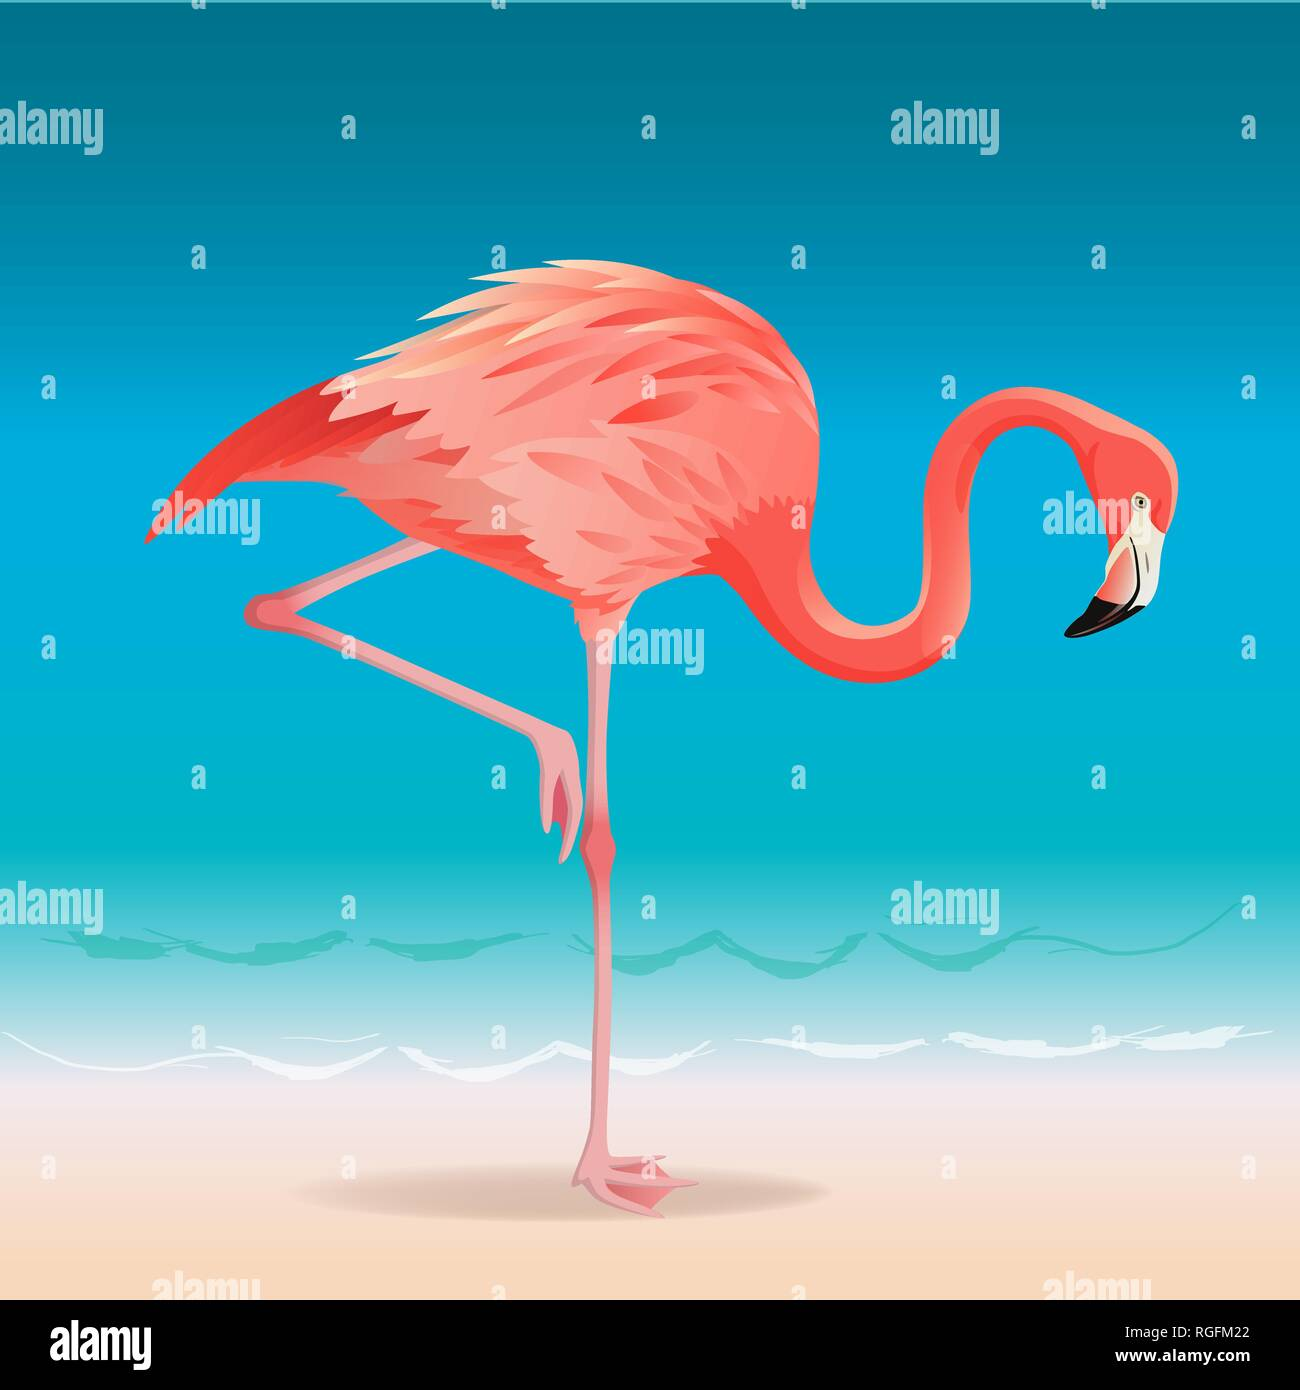 6de0e88f26 Exotic pink flamingo walking on the hot summer beach. Pink flamingo vector  illustration. -